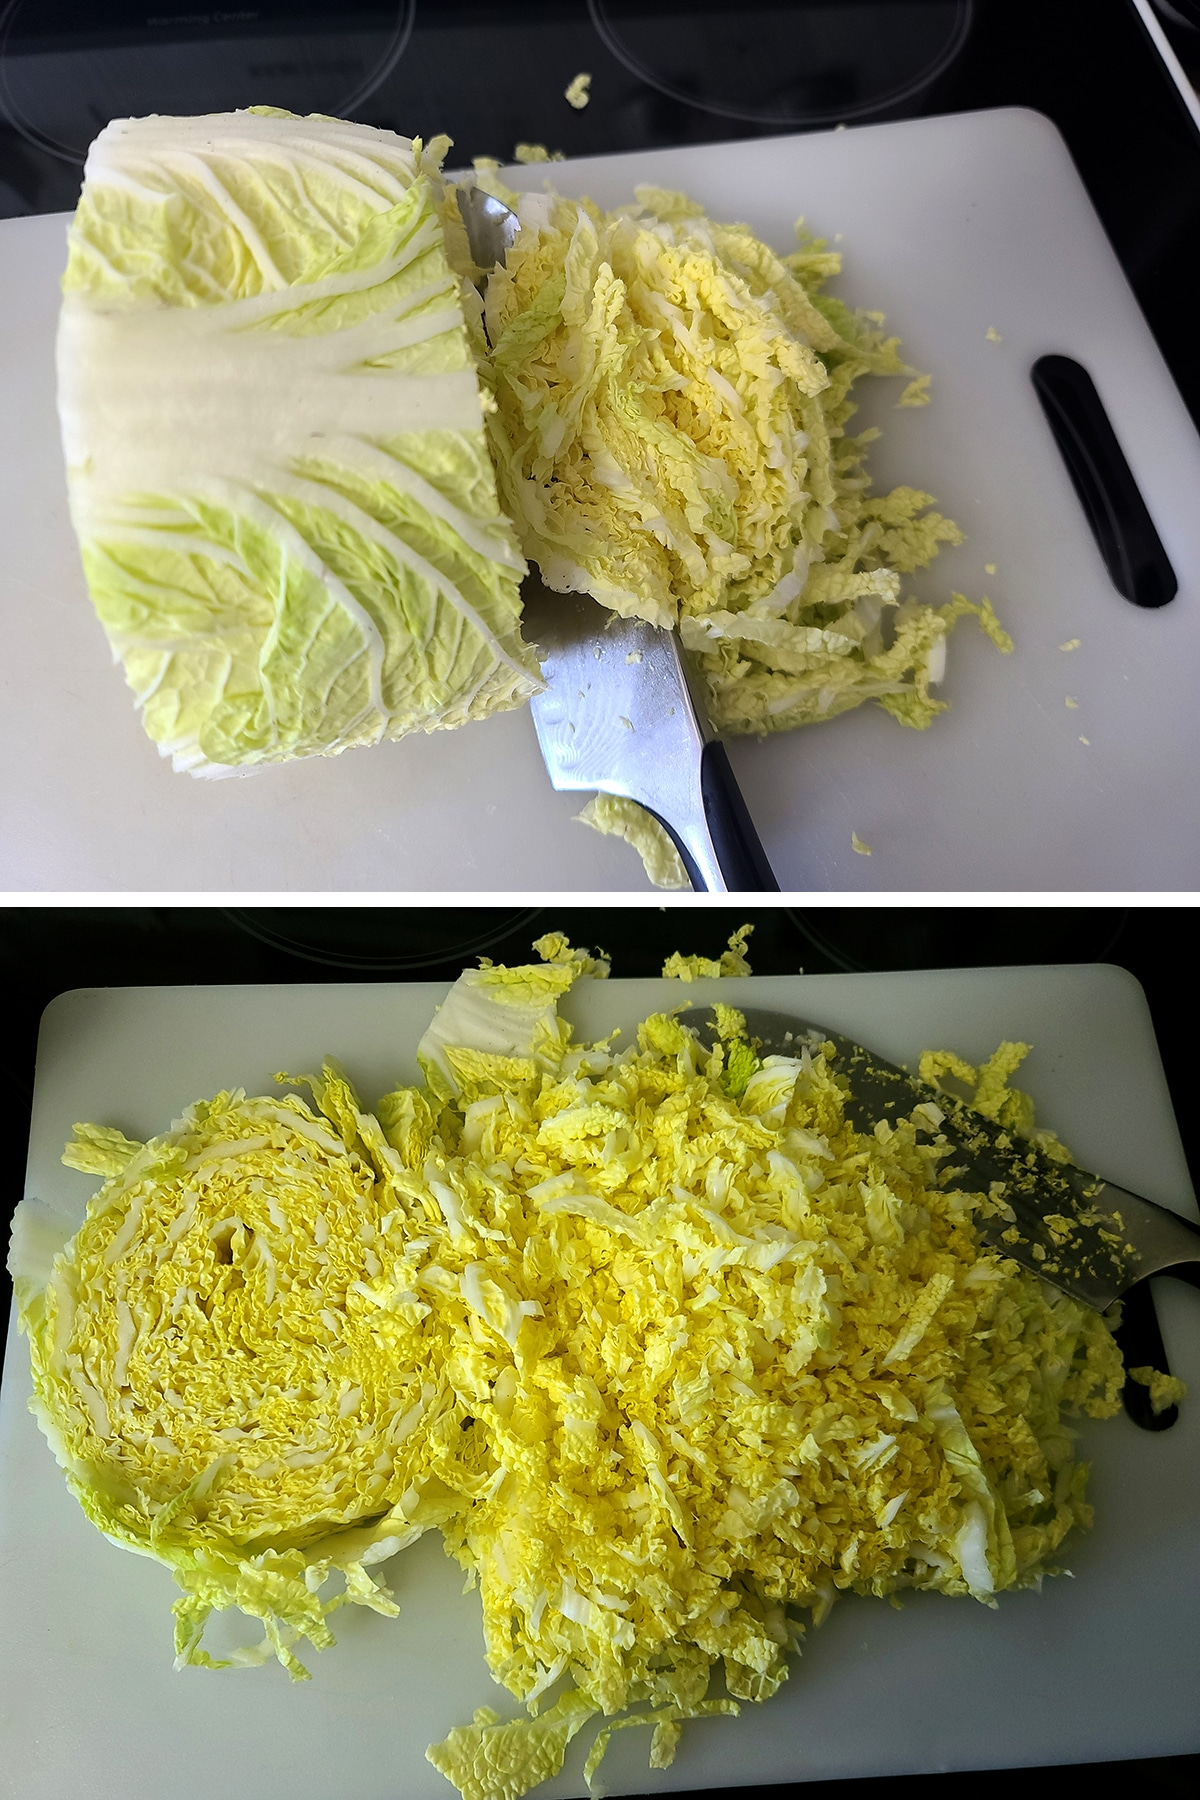 A two part image showing cabbage being finely chopped.